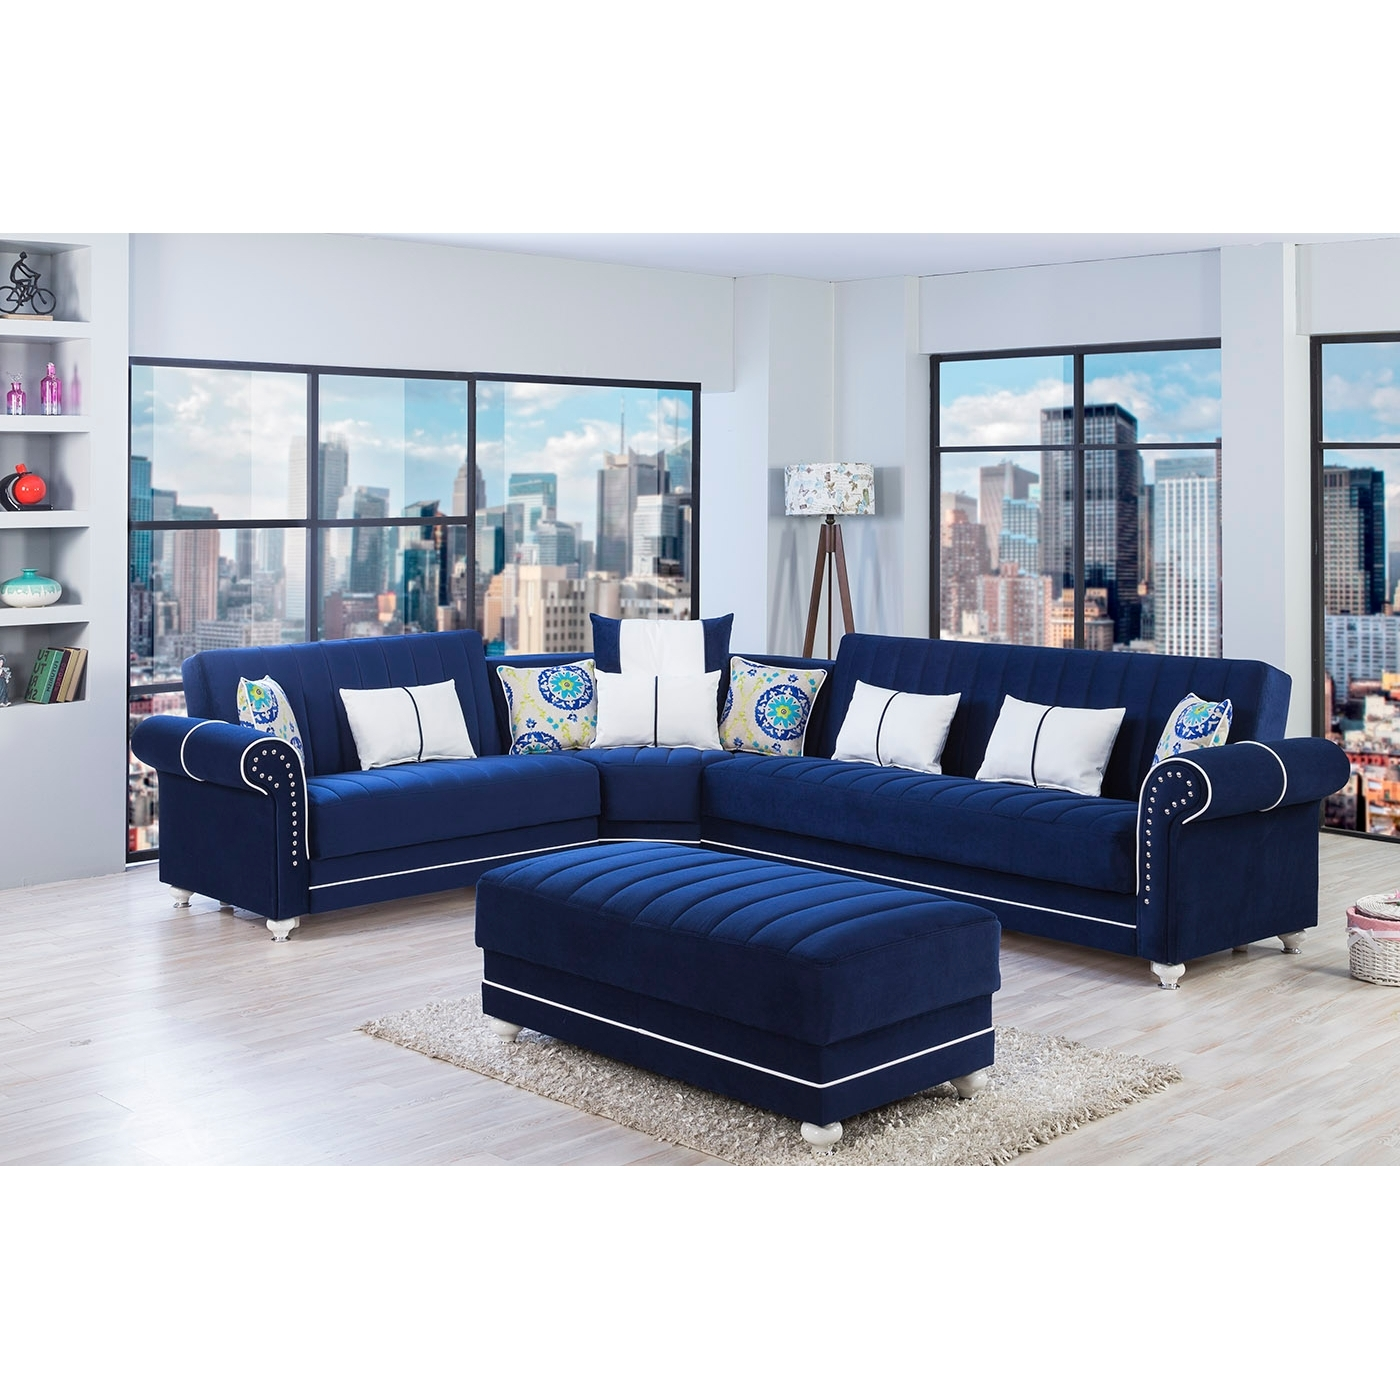 Preferred Royal Furniture Sectional Sofas Throughout Furniture :: Functional Sectionals :: Royal Home Sectional Riva (View 9 of 20)